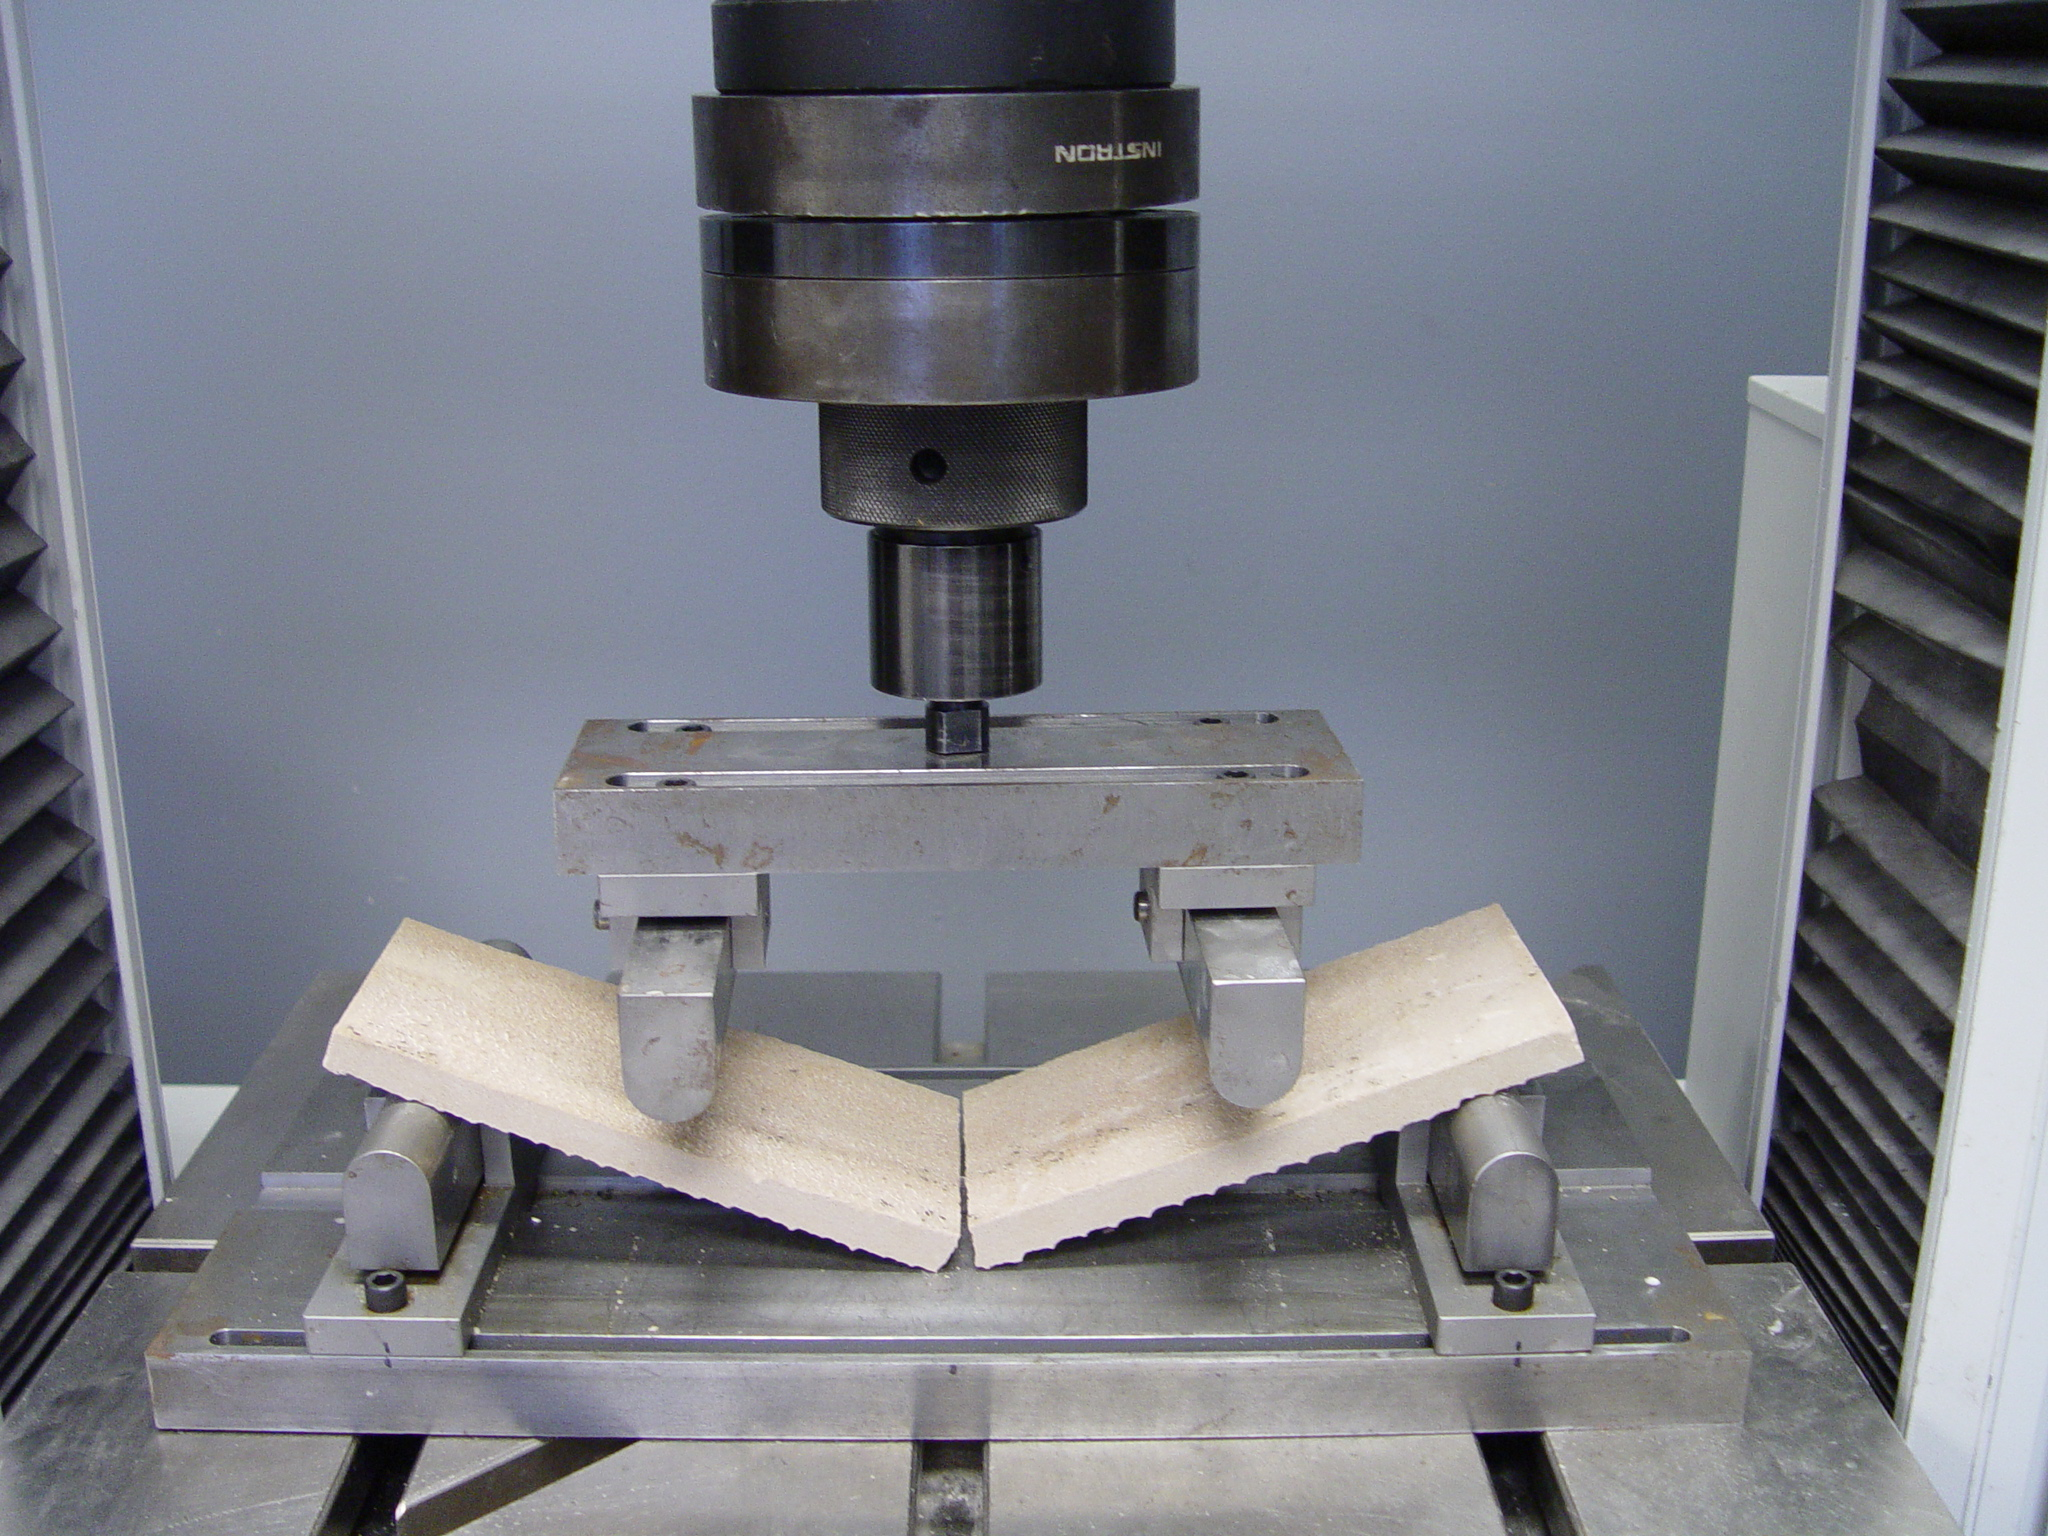 Testing Services - Coefficient of friction tile standards